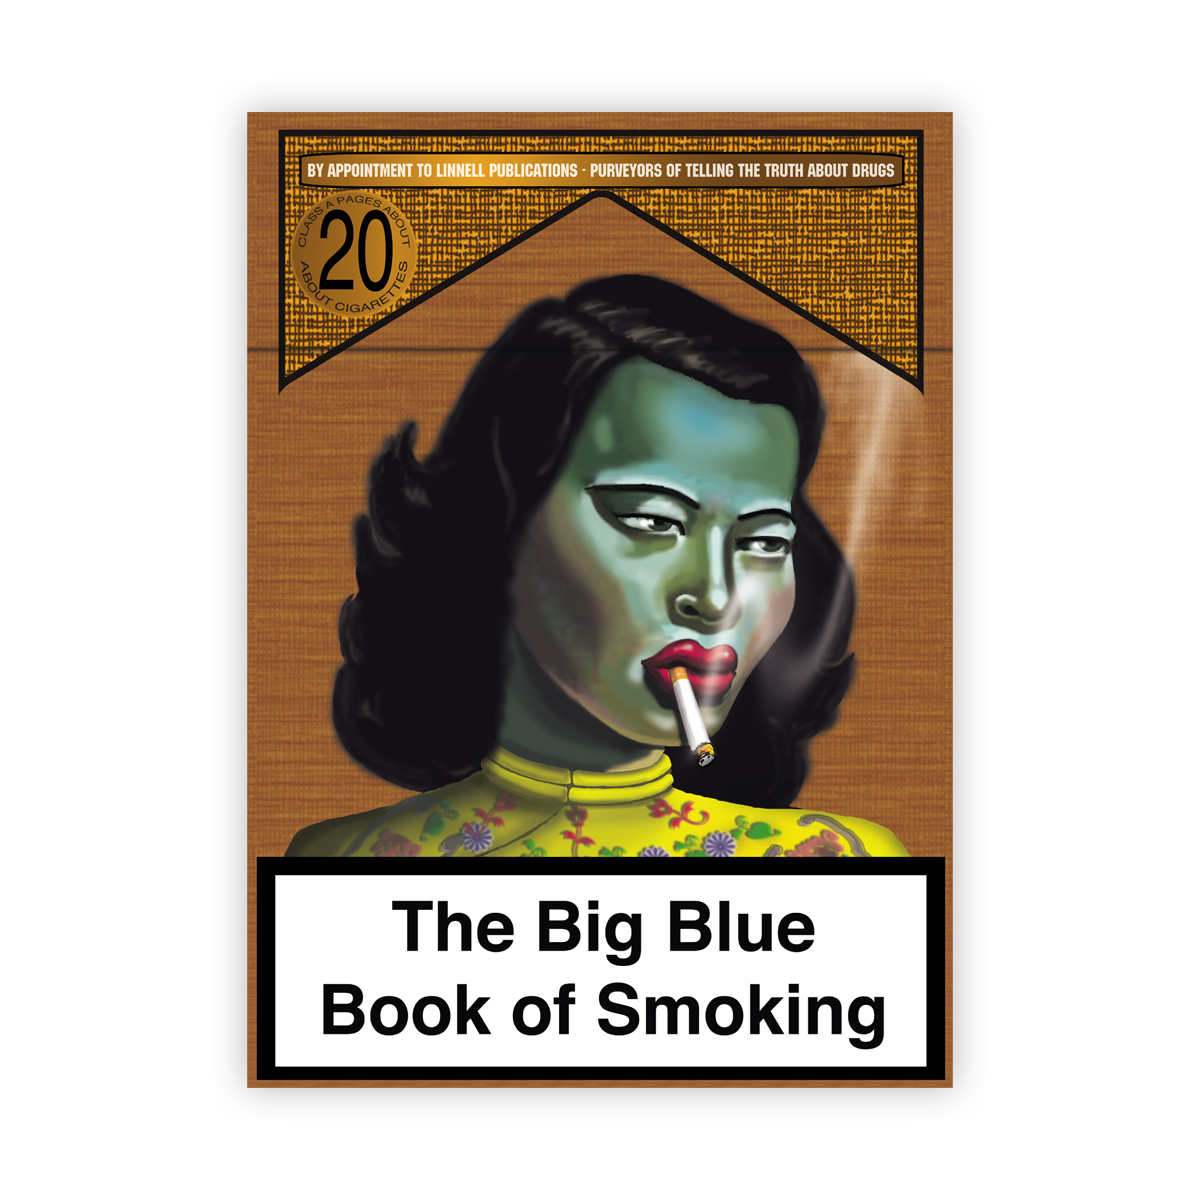 Big Blue Book of Smoking